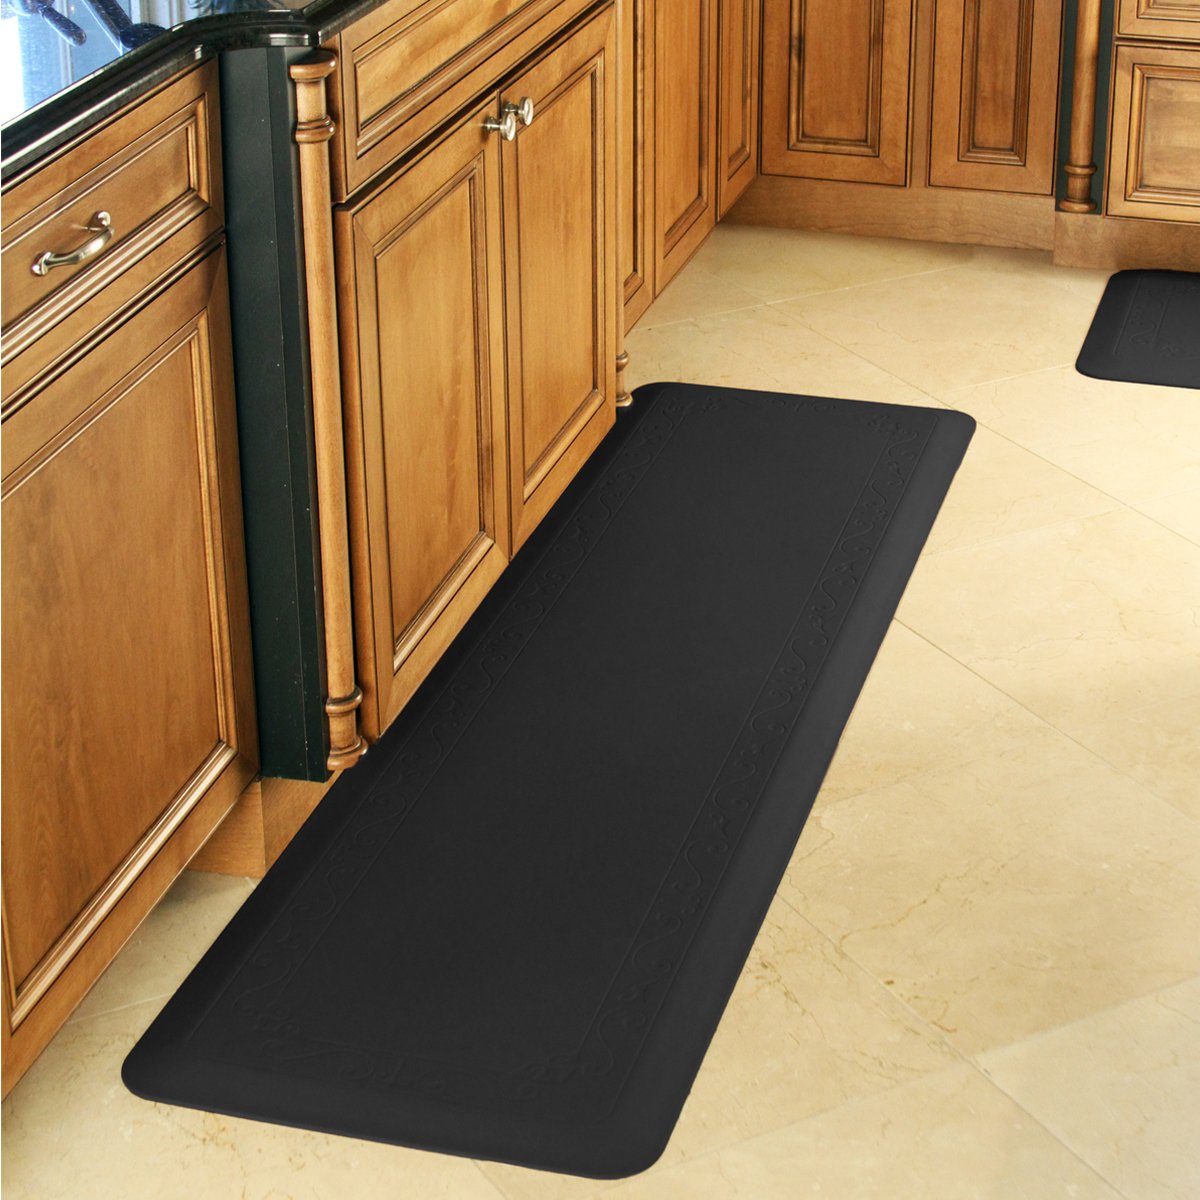 Smart Step Home Collection Fleur-de-Lys Design Mat, 72-Inch by 20-Inch, Black by Smart Step Therapeutic Flooring (Image #2)